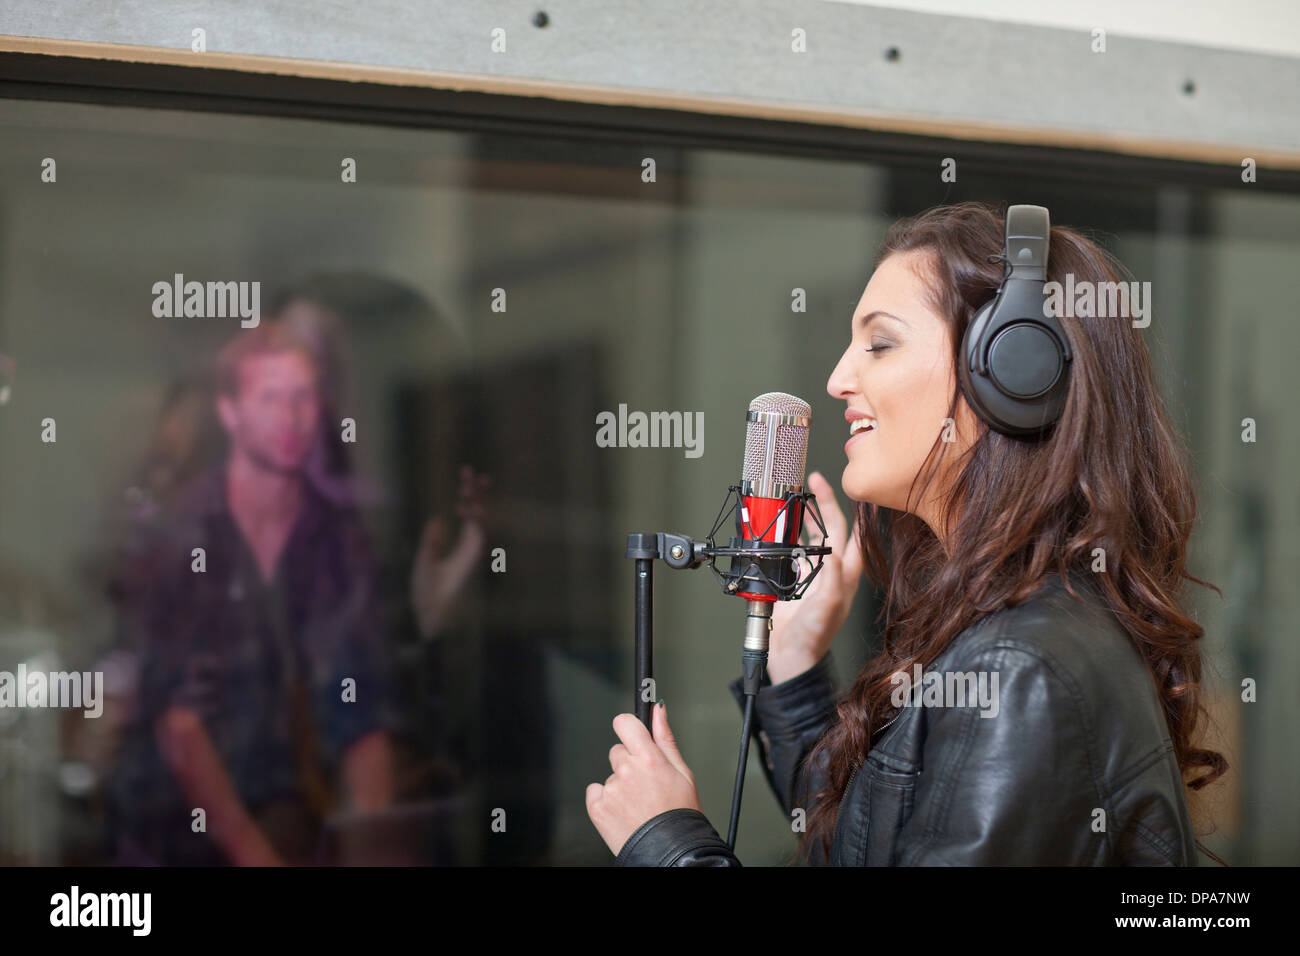 Young female singer in recording studio - Stock Image